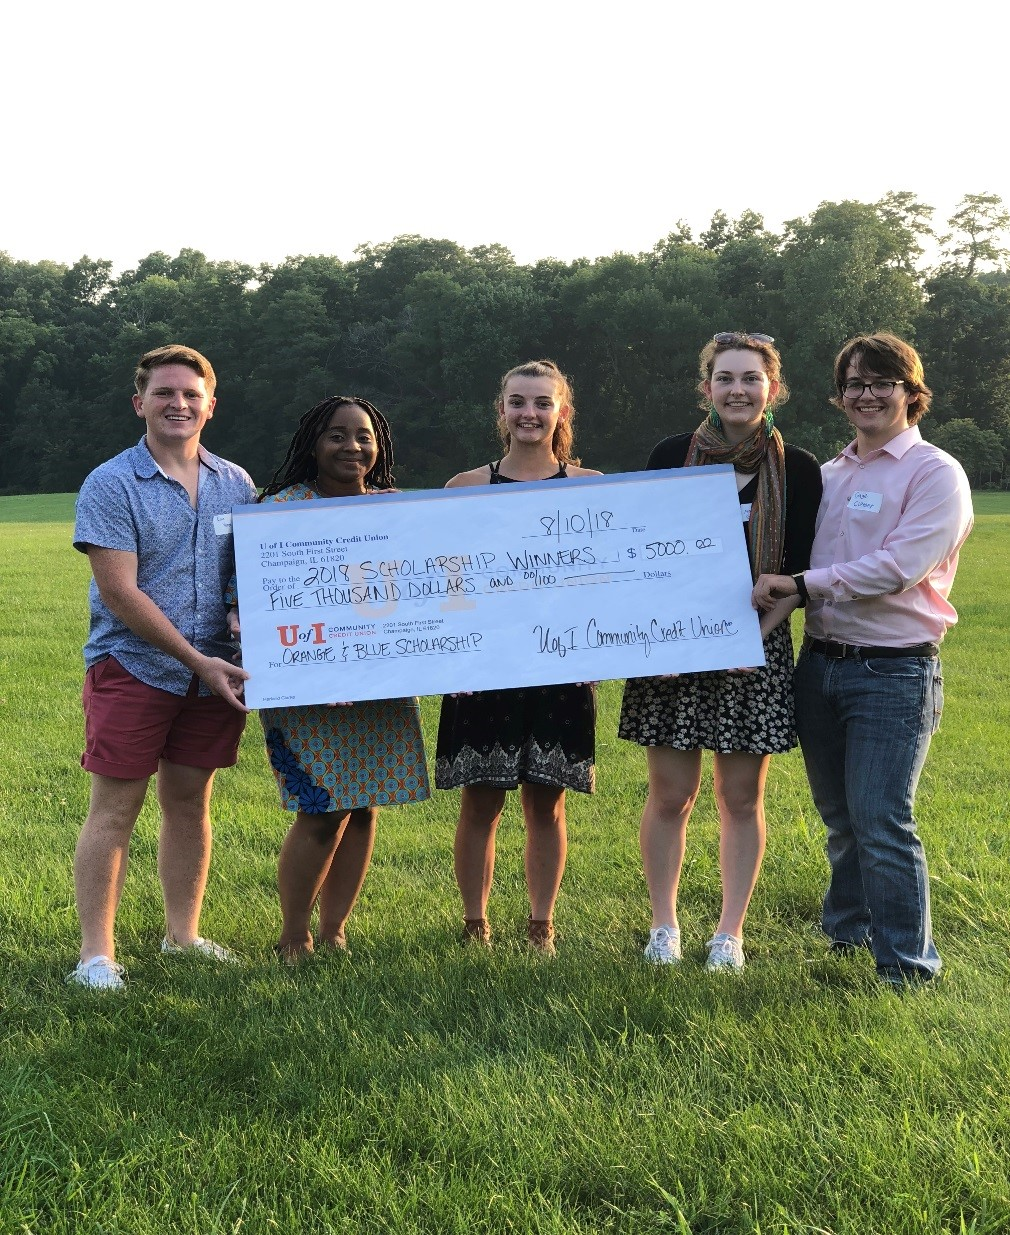 2018 scholarship winners with check